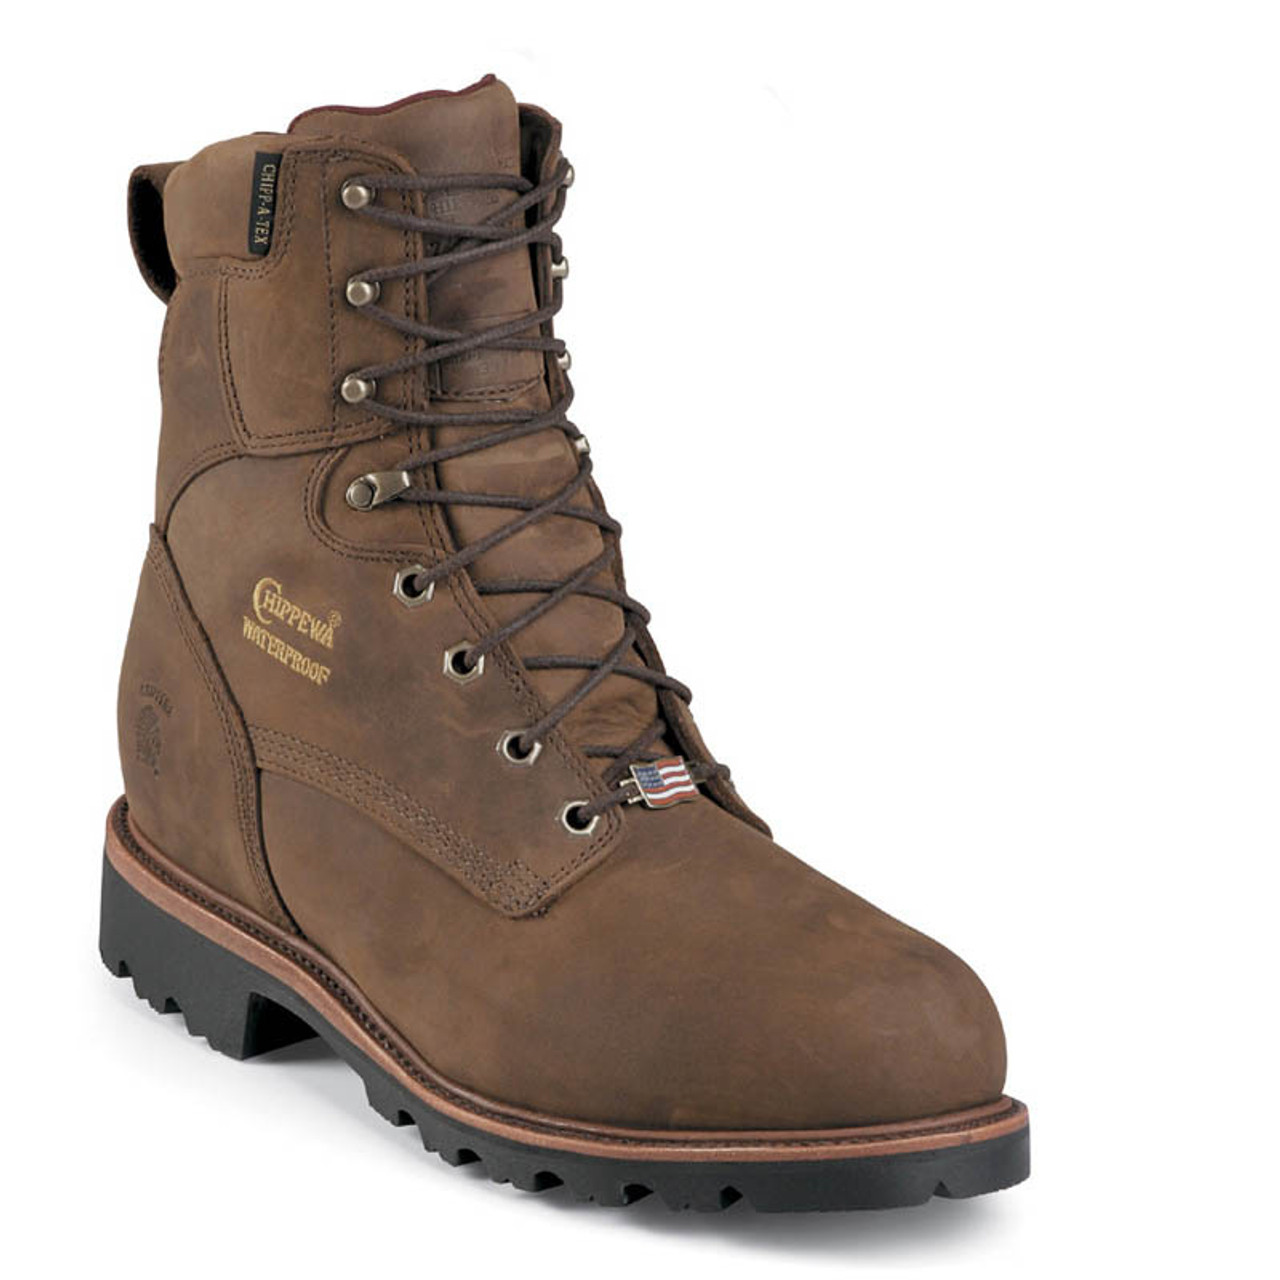 chippewa bay women Get free shipping on chippewa 12 inch bay apache wellington boot 29300 due to manufacturer restrictions, currently this product cannot be shipped to californiathe chippewa 12 inch bay apache wellington boot 29300 is 30.